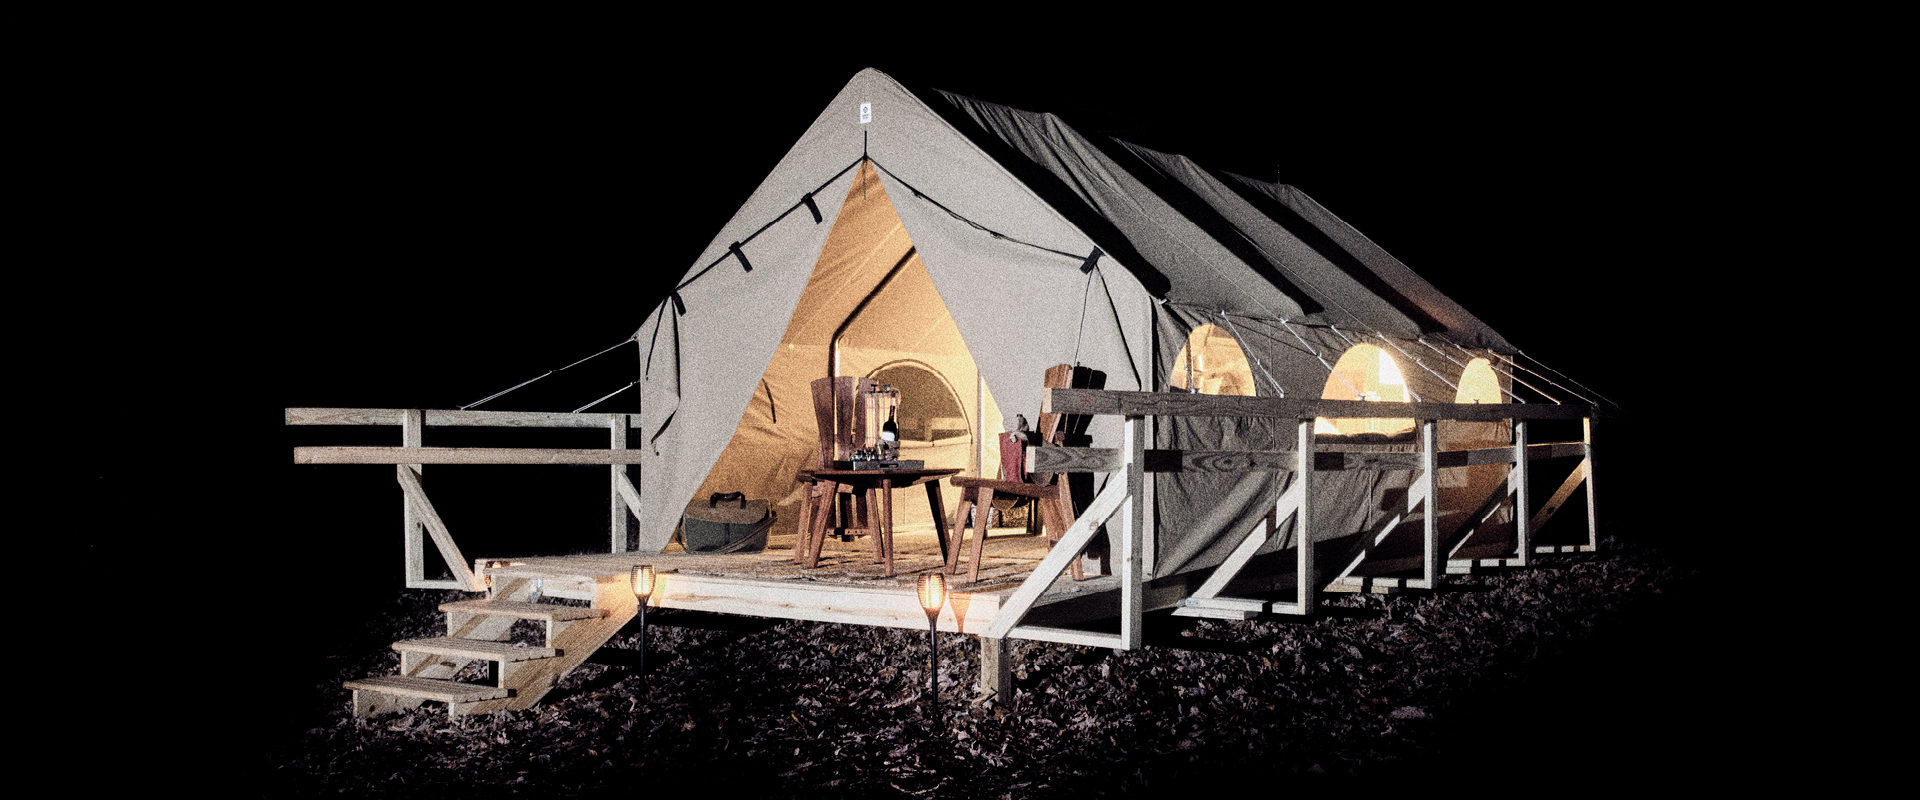 Hestia Canvas Glamping Tent